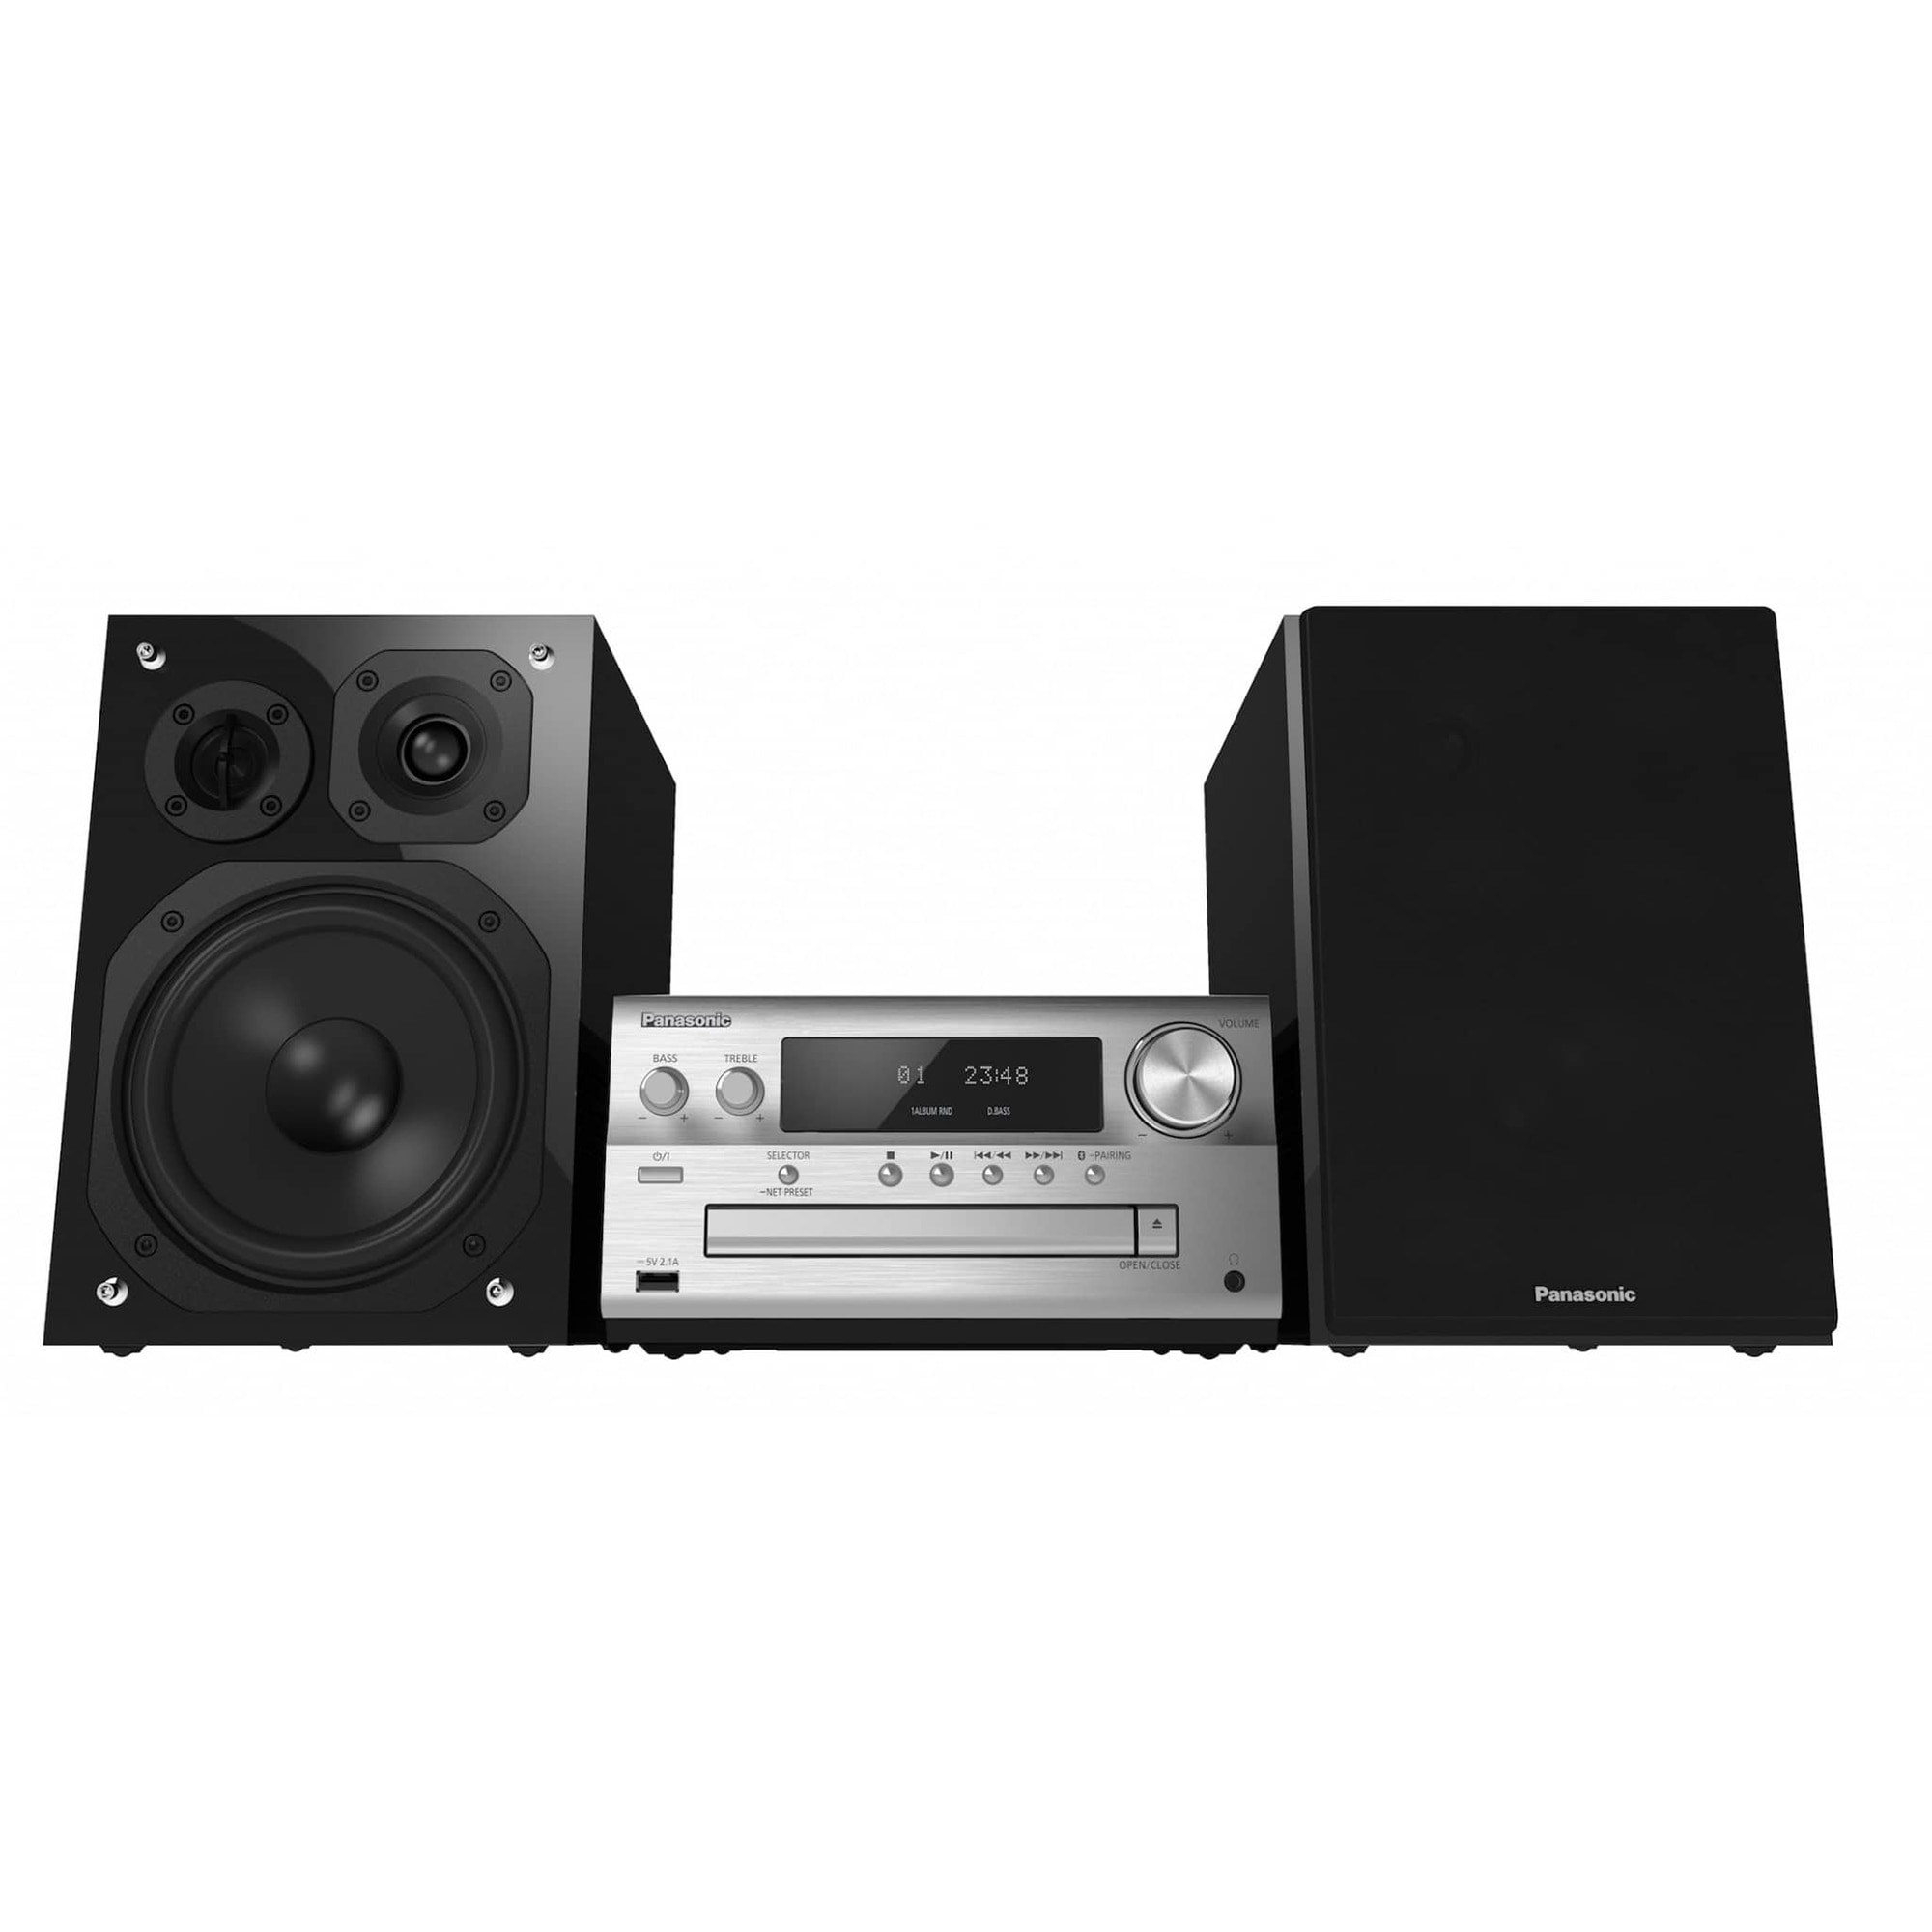 Fotografie Microsistem audio High-Res Panasonic SC-PMX90EG-S, 120W, BT, USB-DAC, Lincs D-Amp, Difuzoare 3 cai, Optical-in, Argintiu